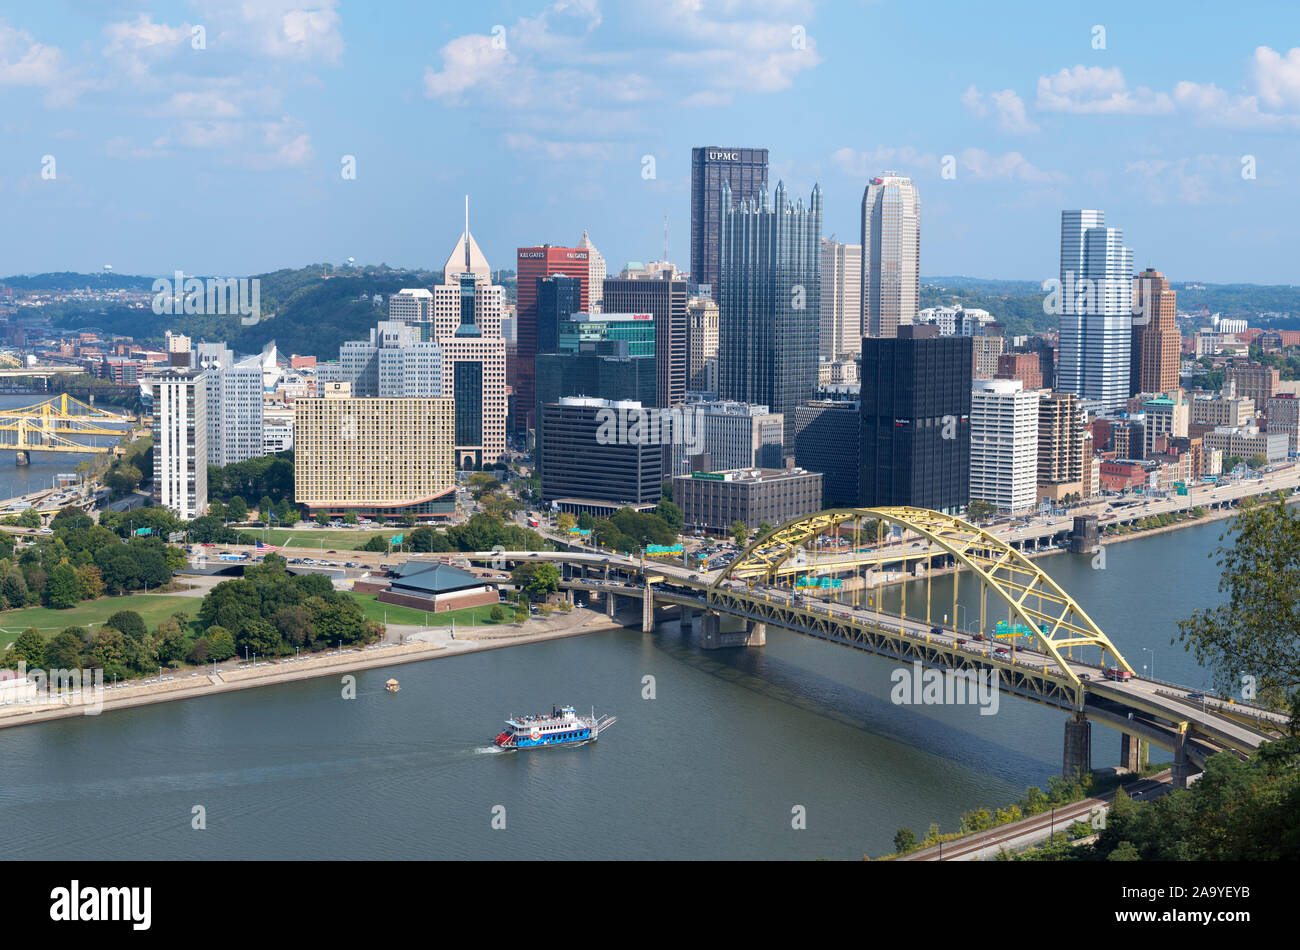 Aerial view of downtown skyline from the top of Duquesne Incline funicular with Fort Duquesne Bridge in foreground, Pittsburgh, Pennsylvania, USA Stock Photo